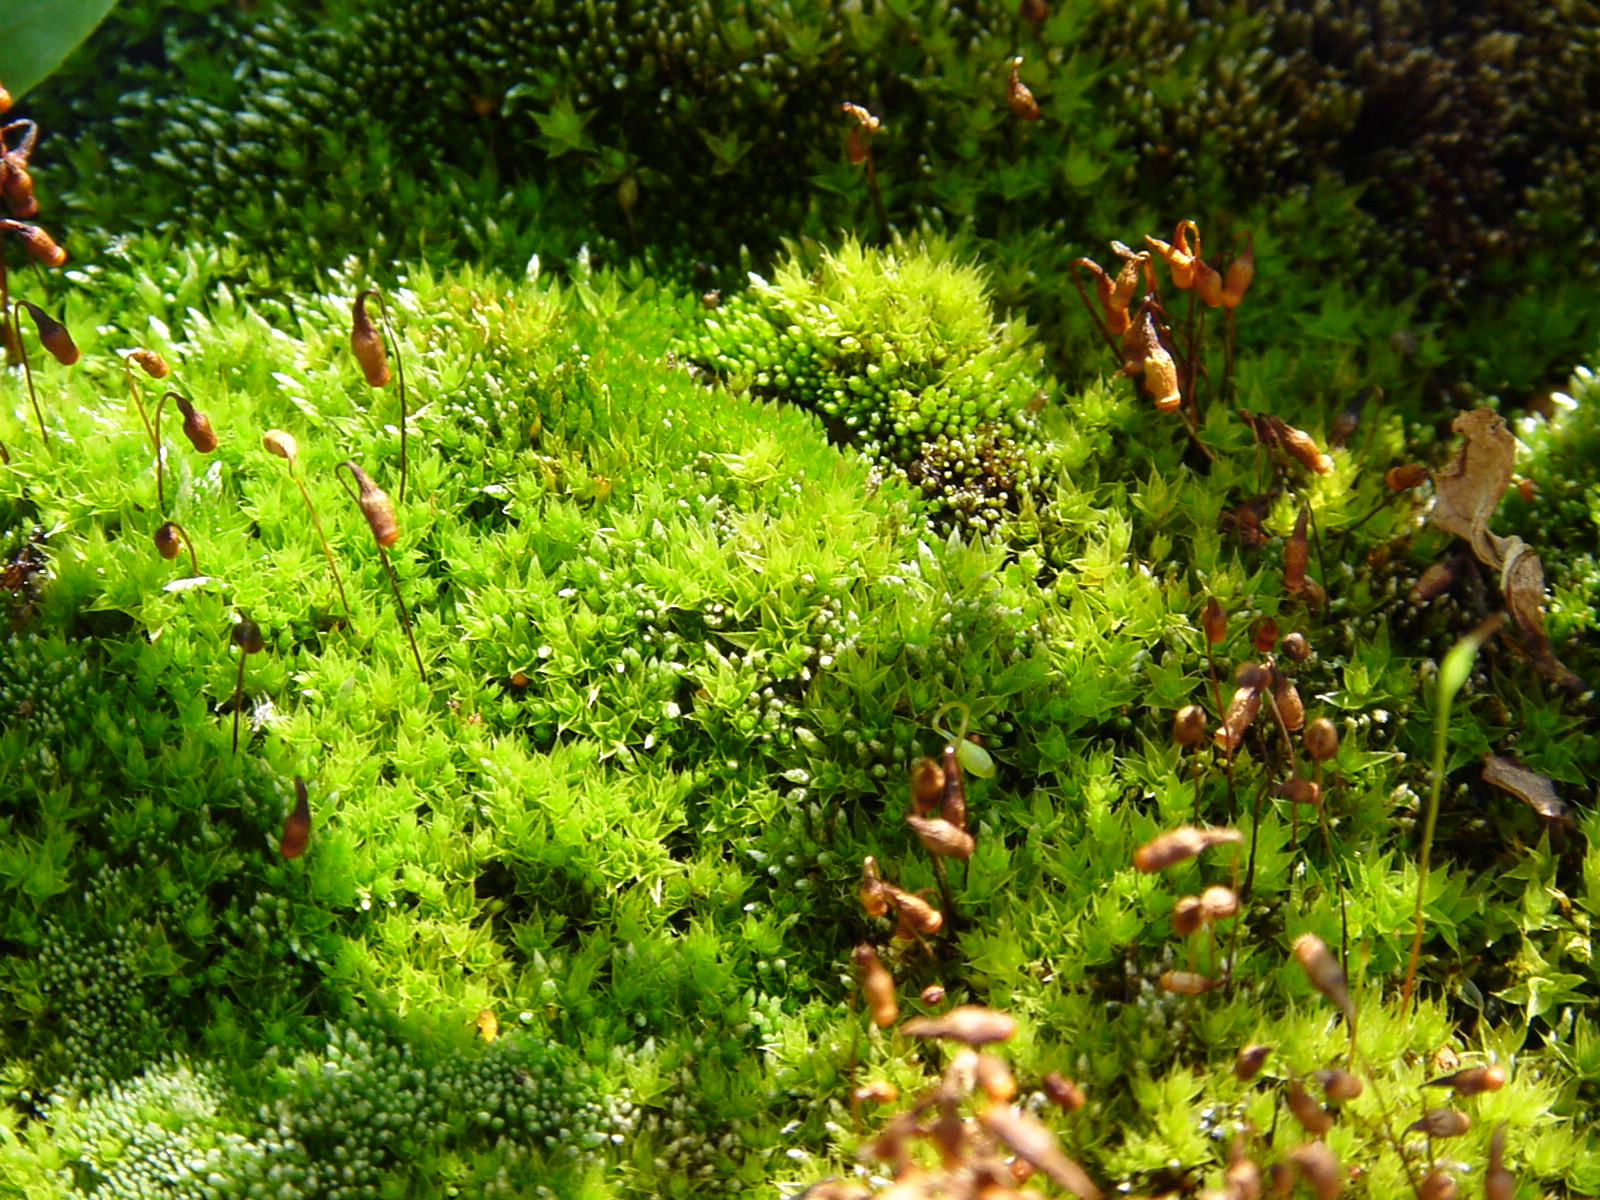 Moss © Manfred Morgner, Creative Commons Attribution-ShareAlike 3.0 Unported license, via Wikimedia Commons